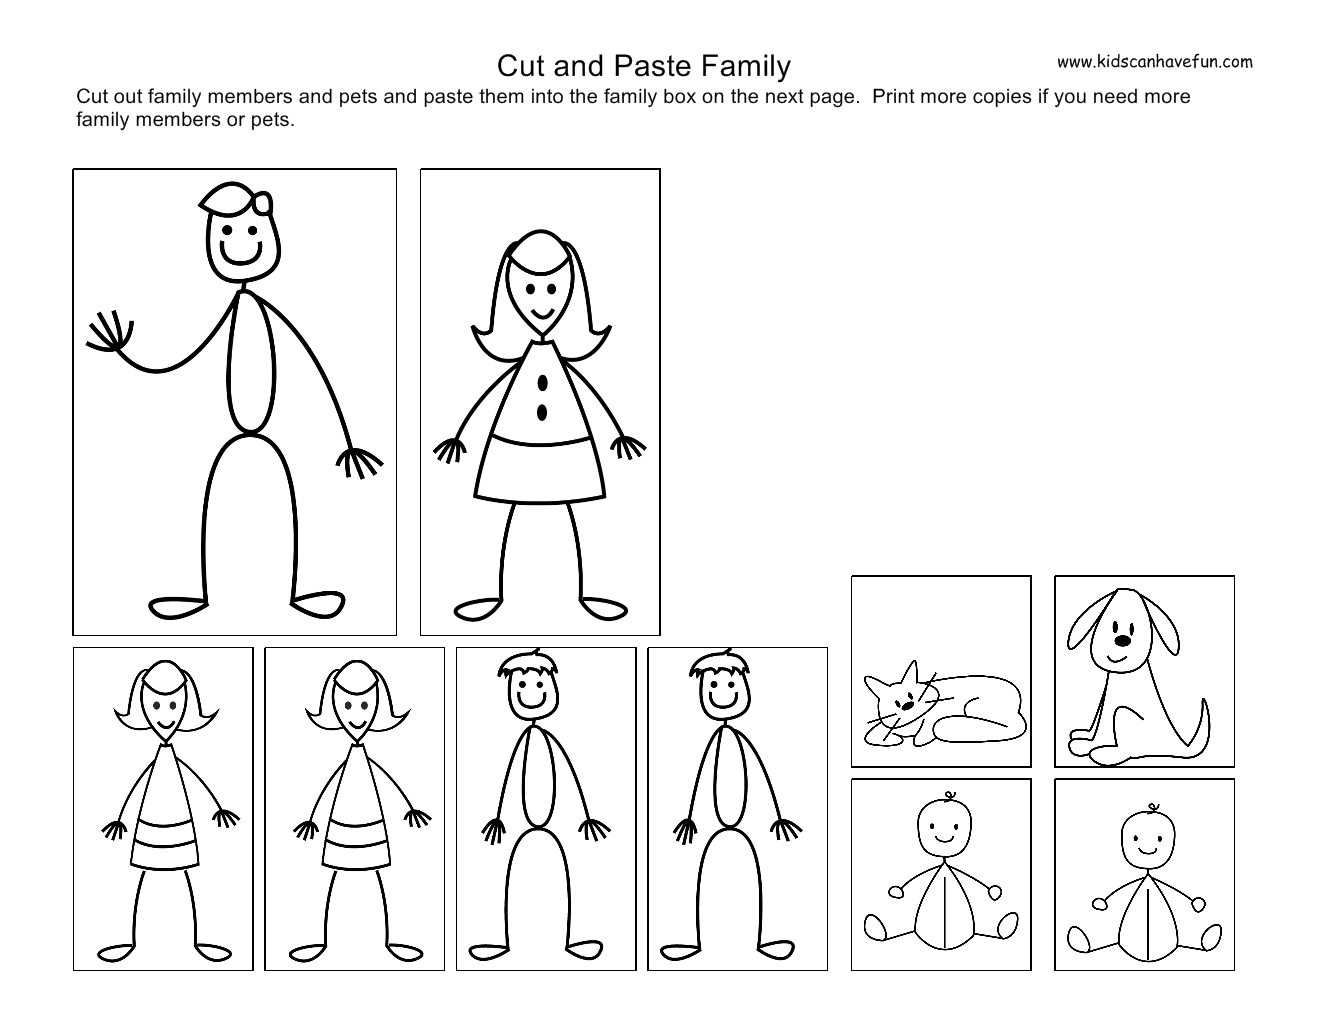 Worksheets Cut And Paste Worksheets For Pre K cut and paste kids family worksheets theme preschool